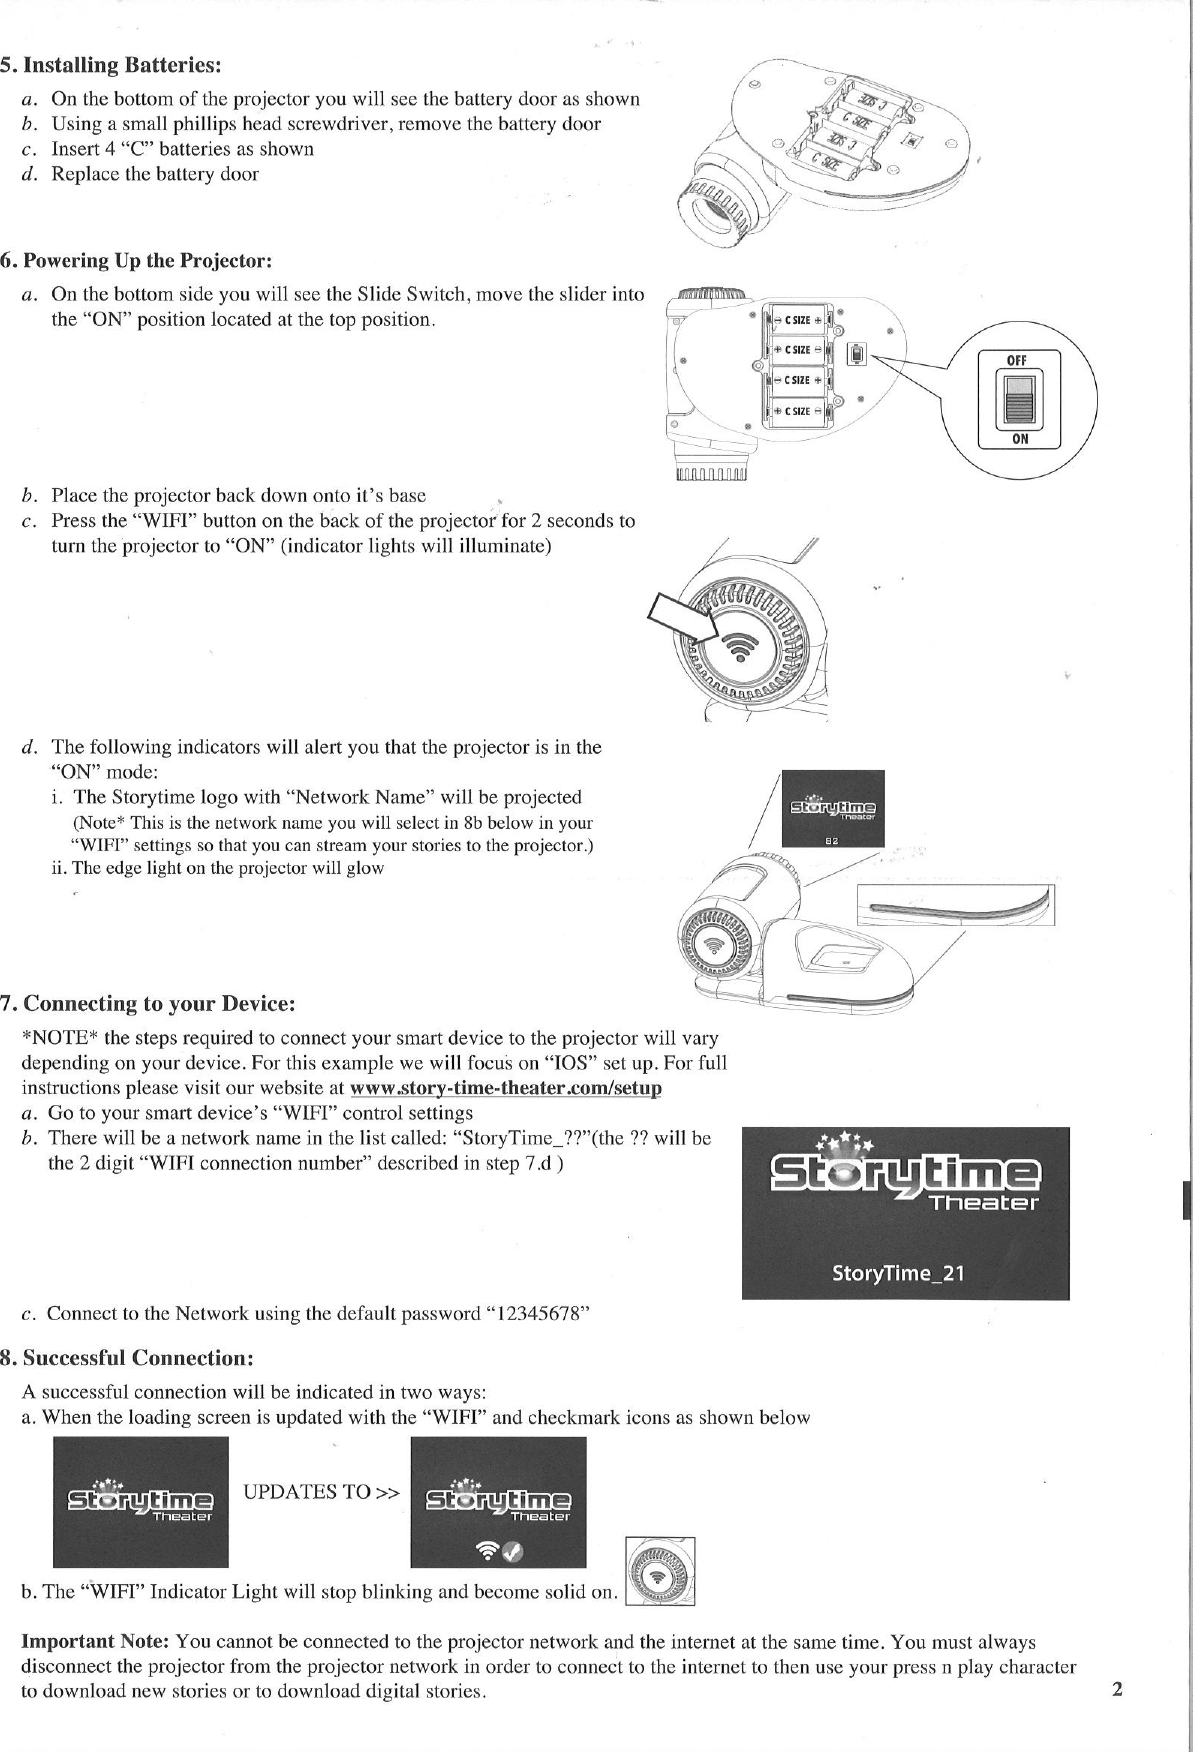 storytime theater projector instructions